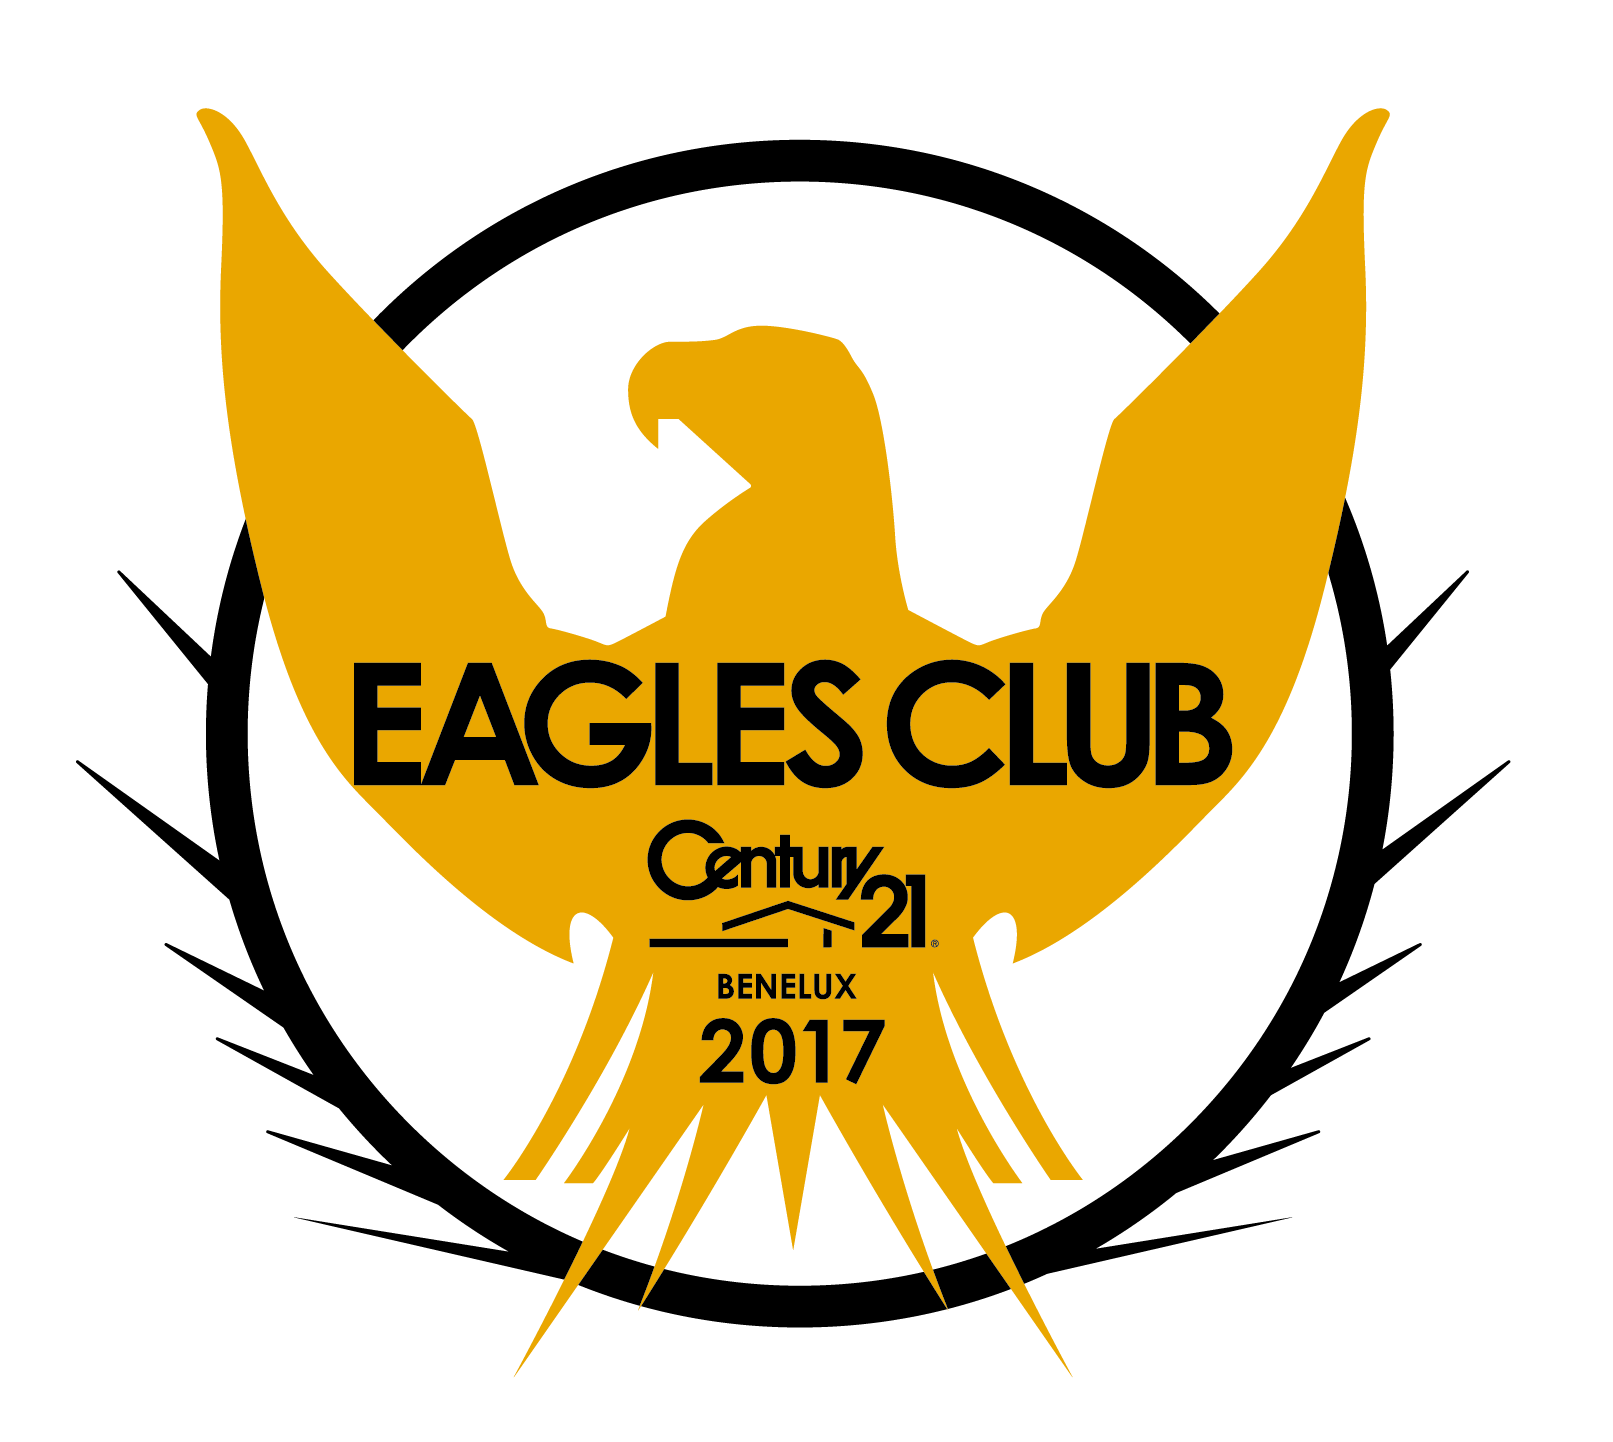 Eagles Club 2017